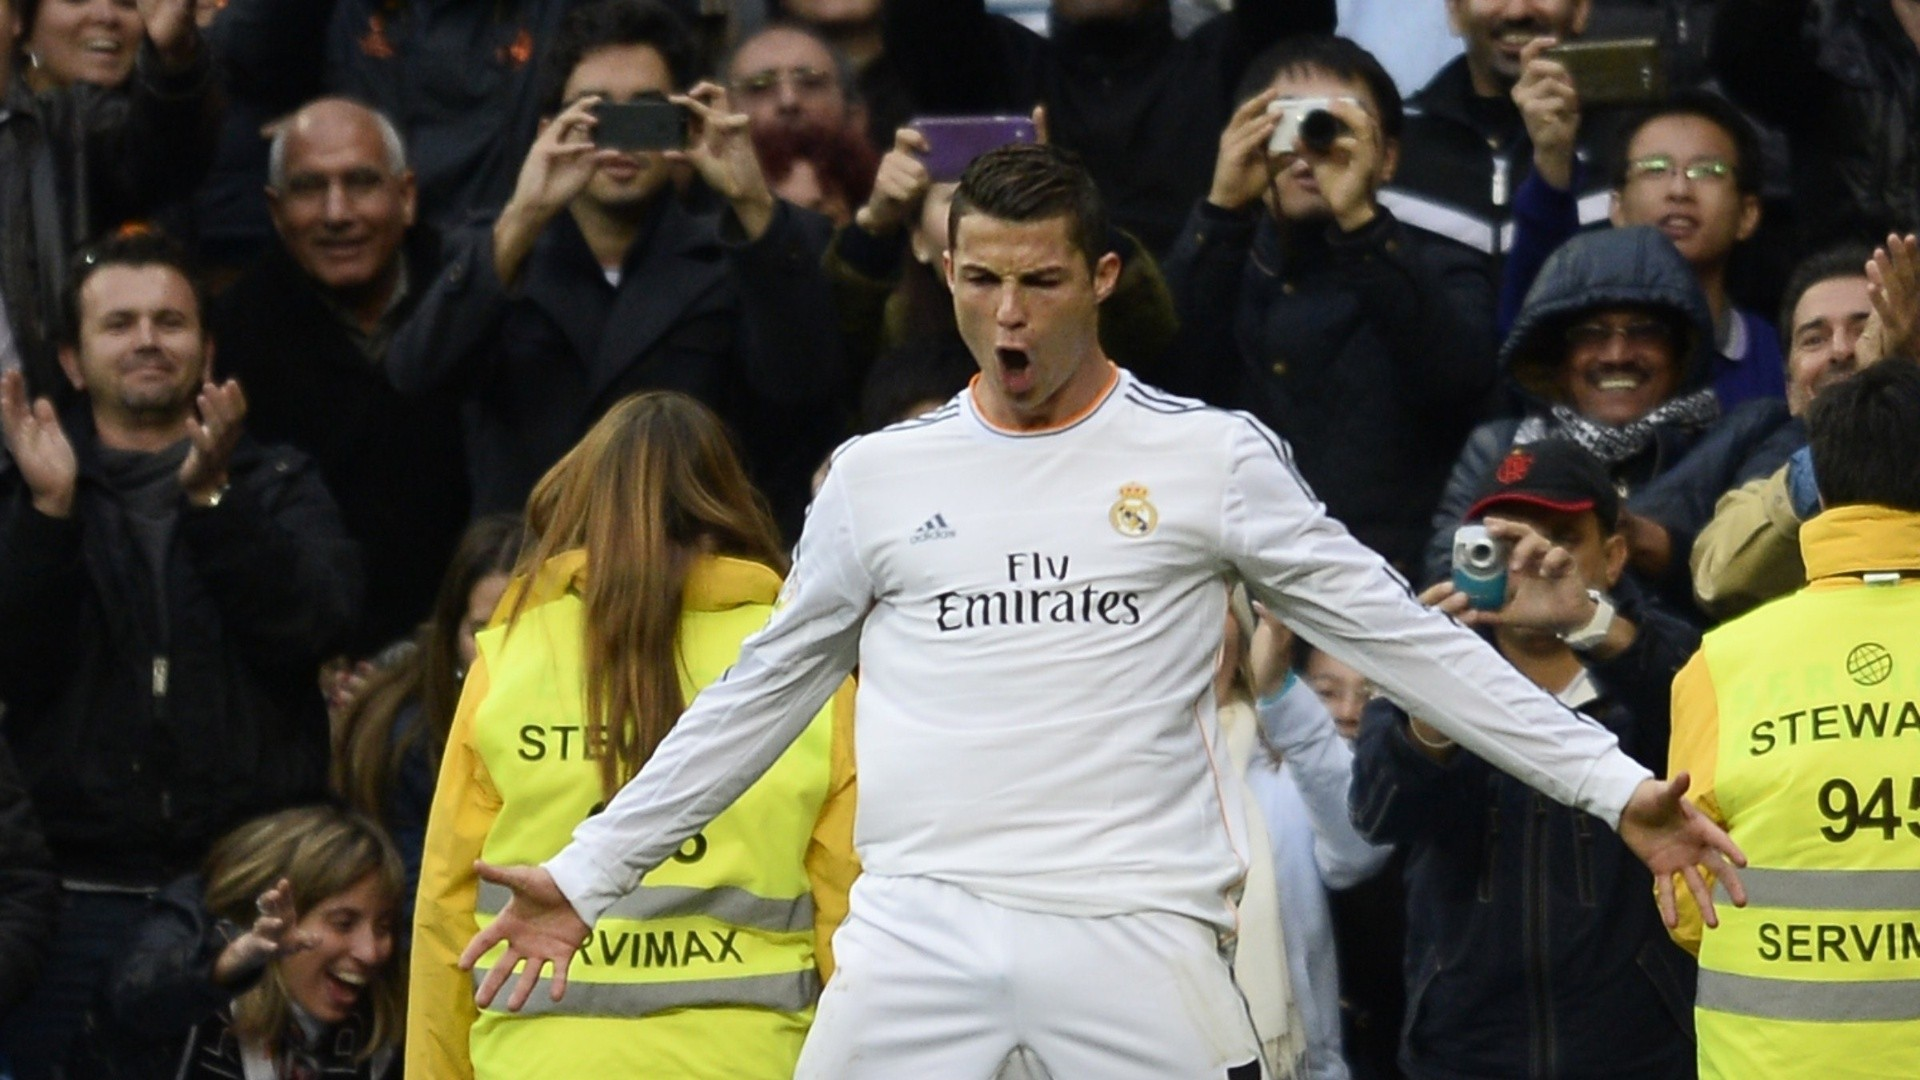 cristiano ronaldo essay Biography portugal's best and manchester united's darling midfielder, cristiano ronaldo dos santos aveiro was brought into this world on february 5, 1985 in funchal.